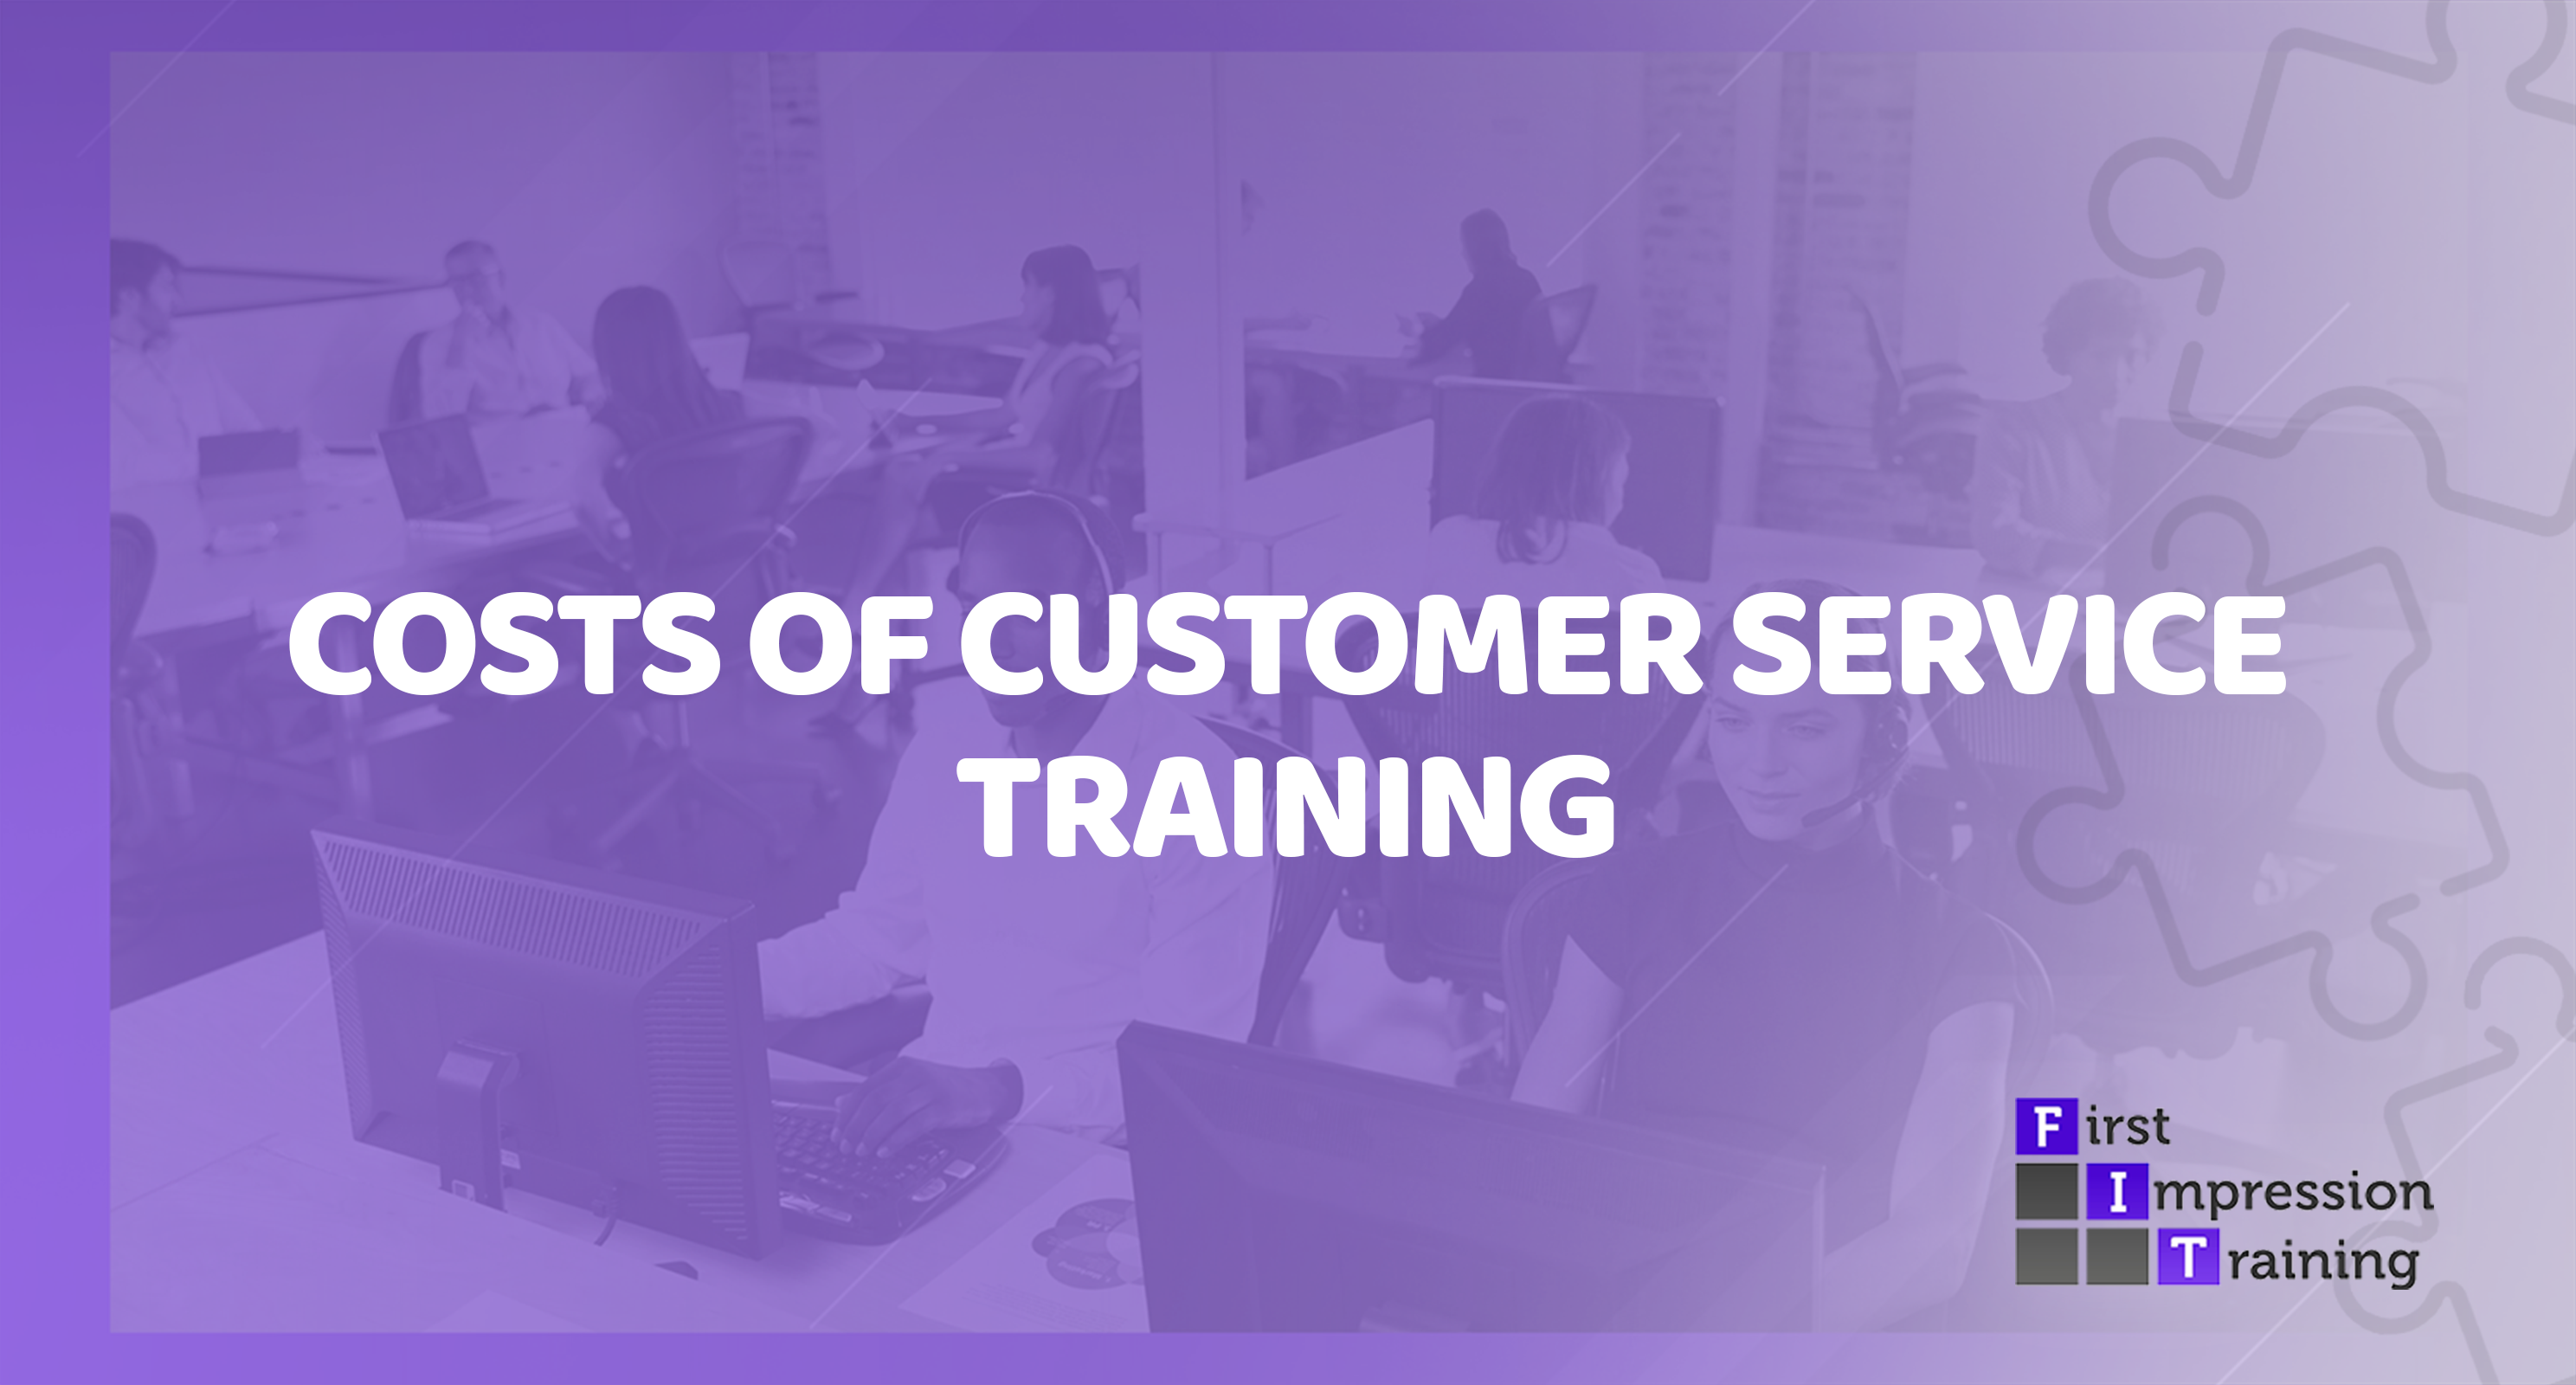 How much does it cost to train a team of Customer Service staff?